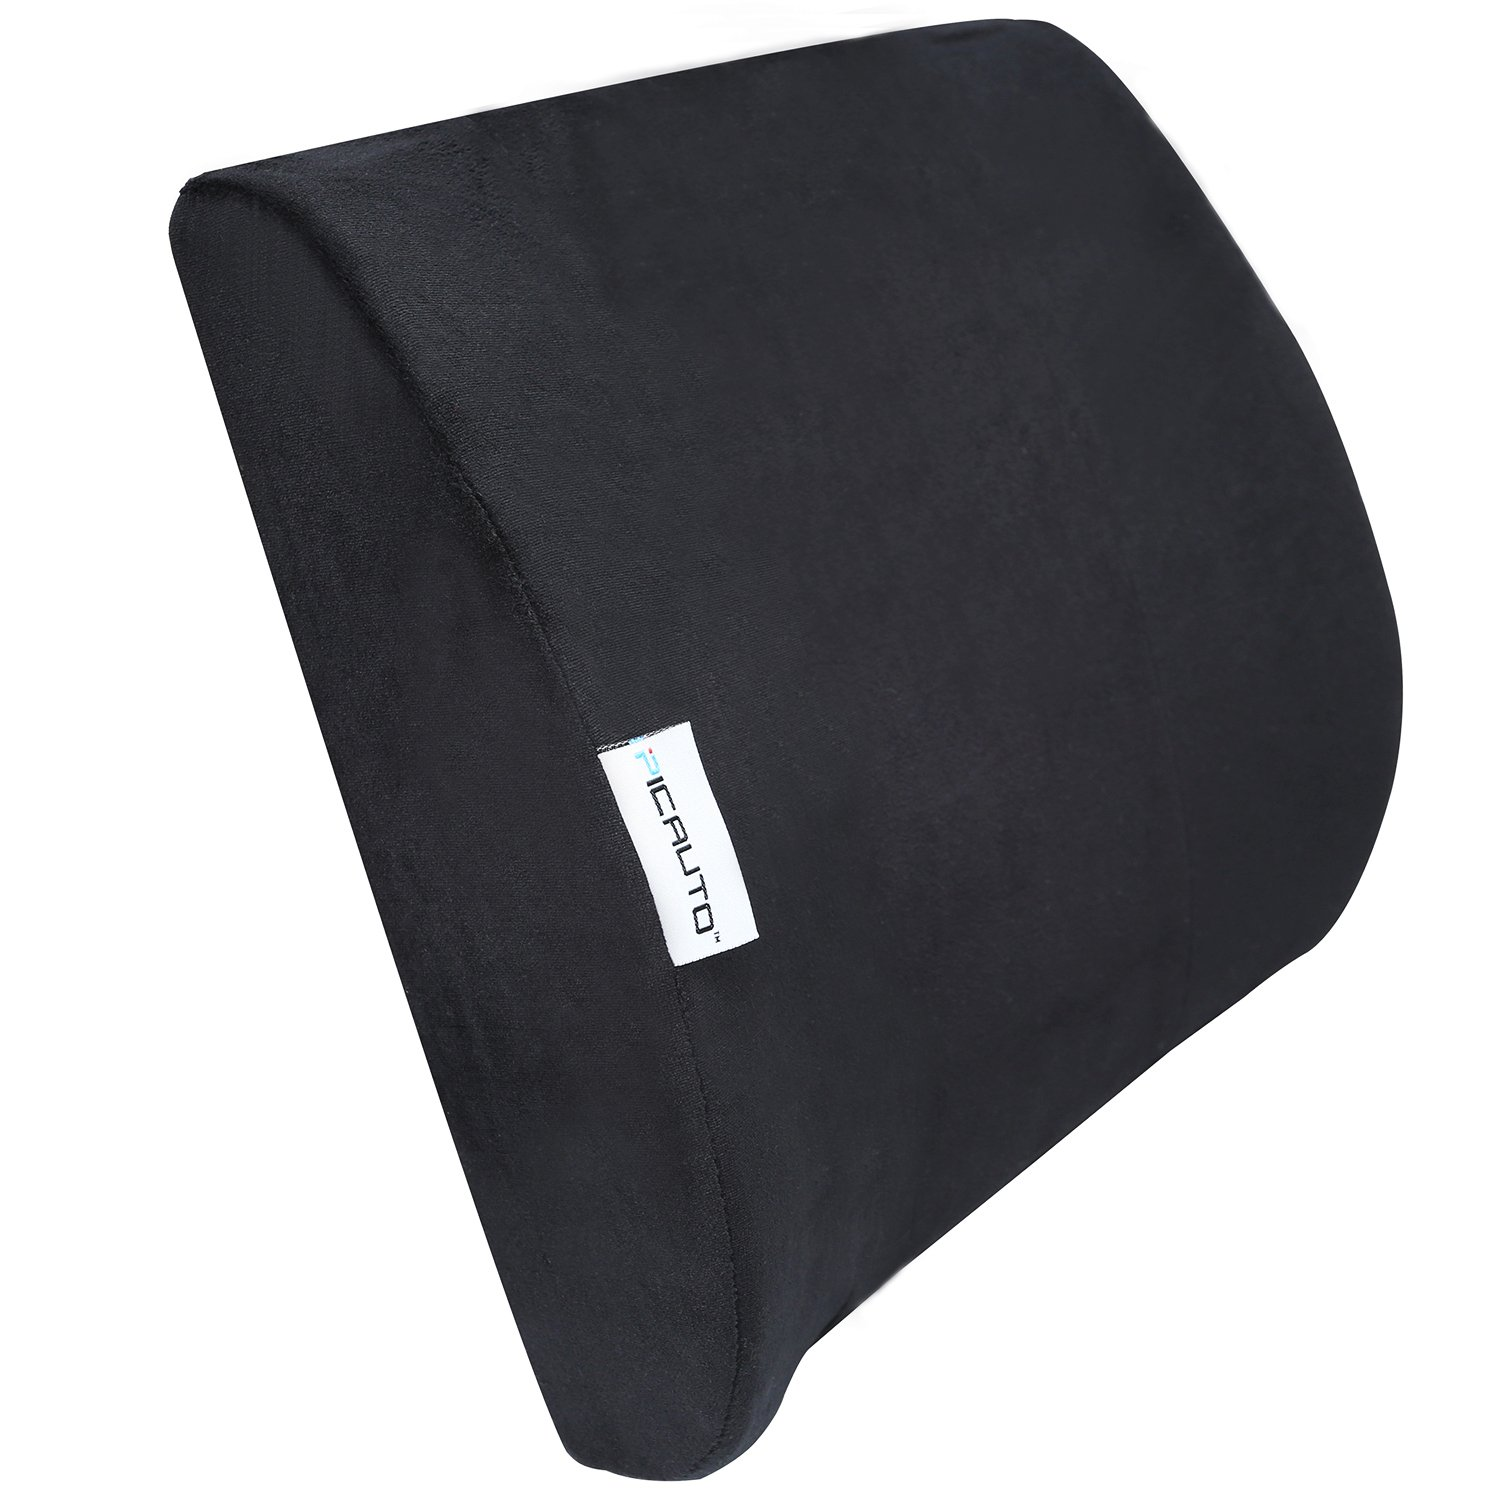 PIC AUTO Lumbar Support Back Cushion for Car, Truck, Bed, Office, Airplane; Memory Foam Back Support for Lower Back Pain Relief, Black